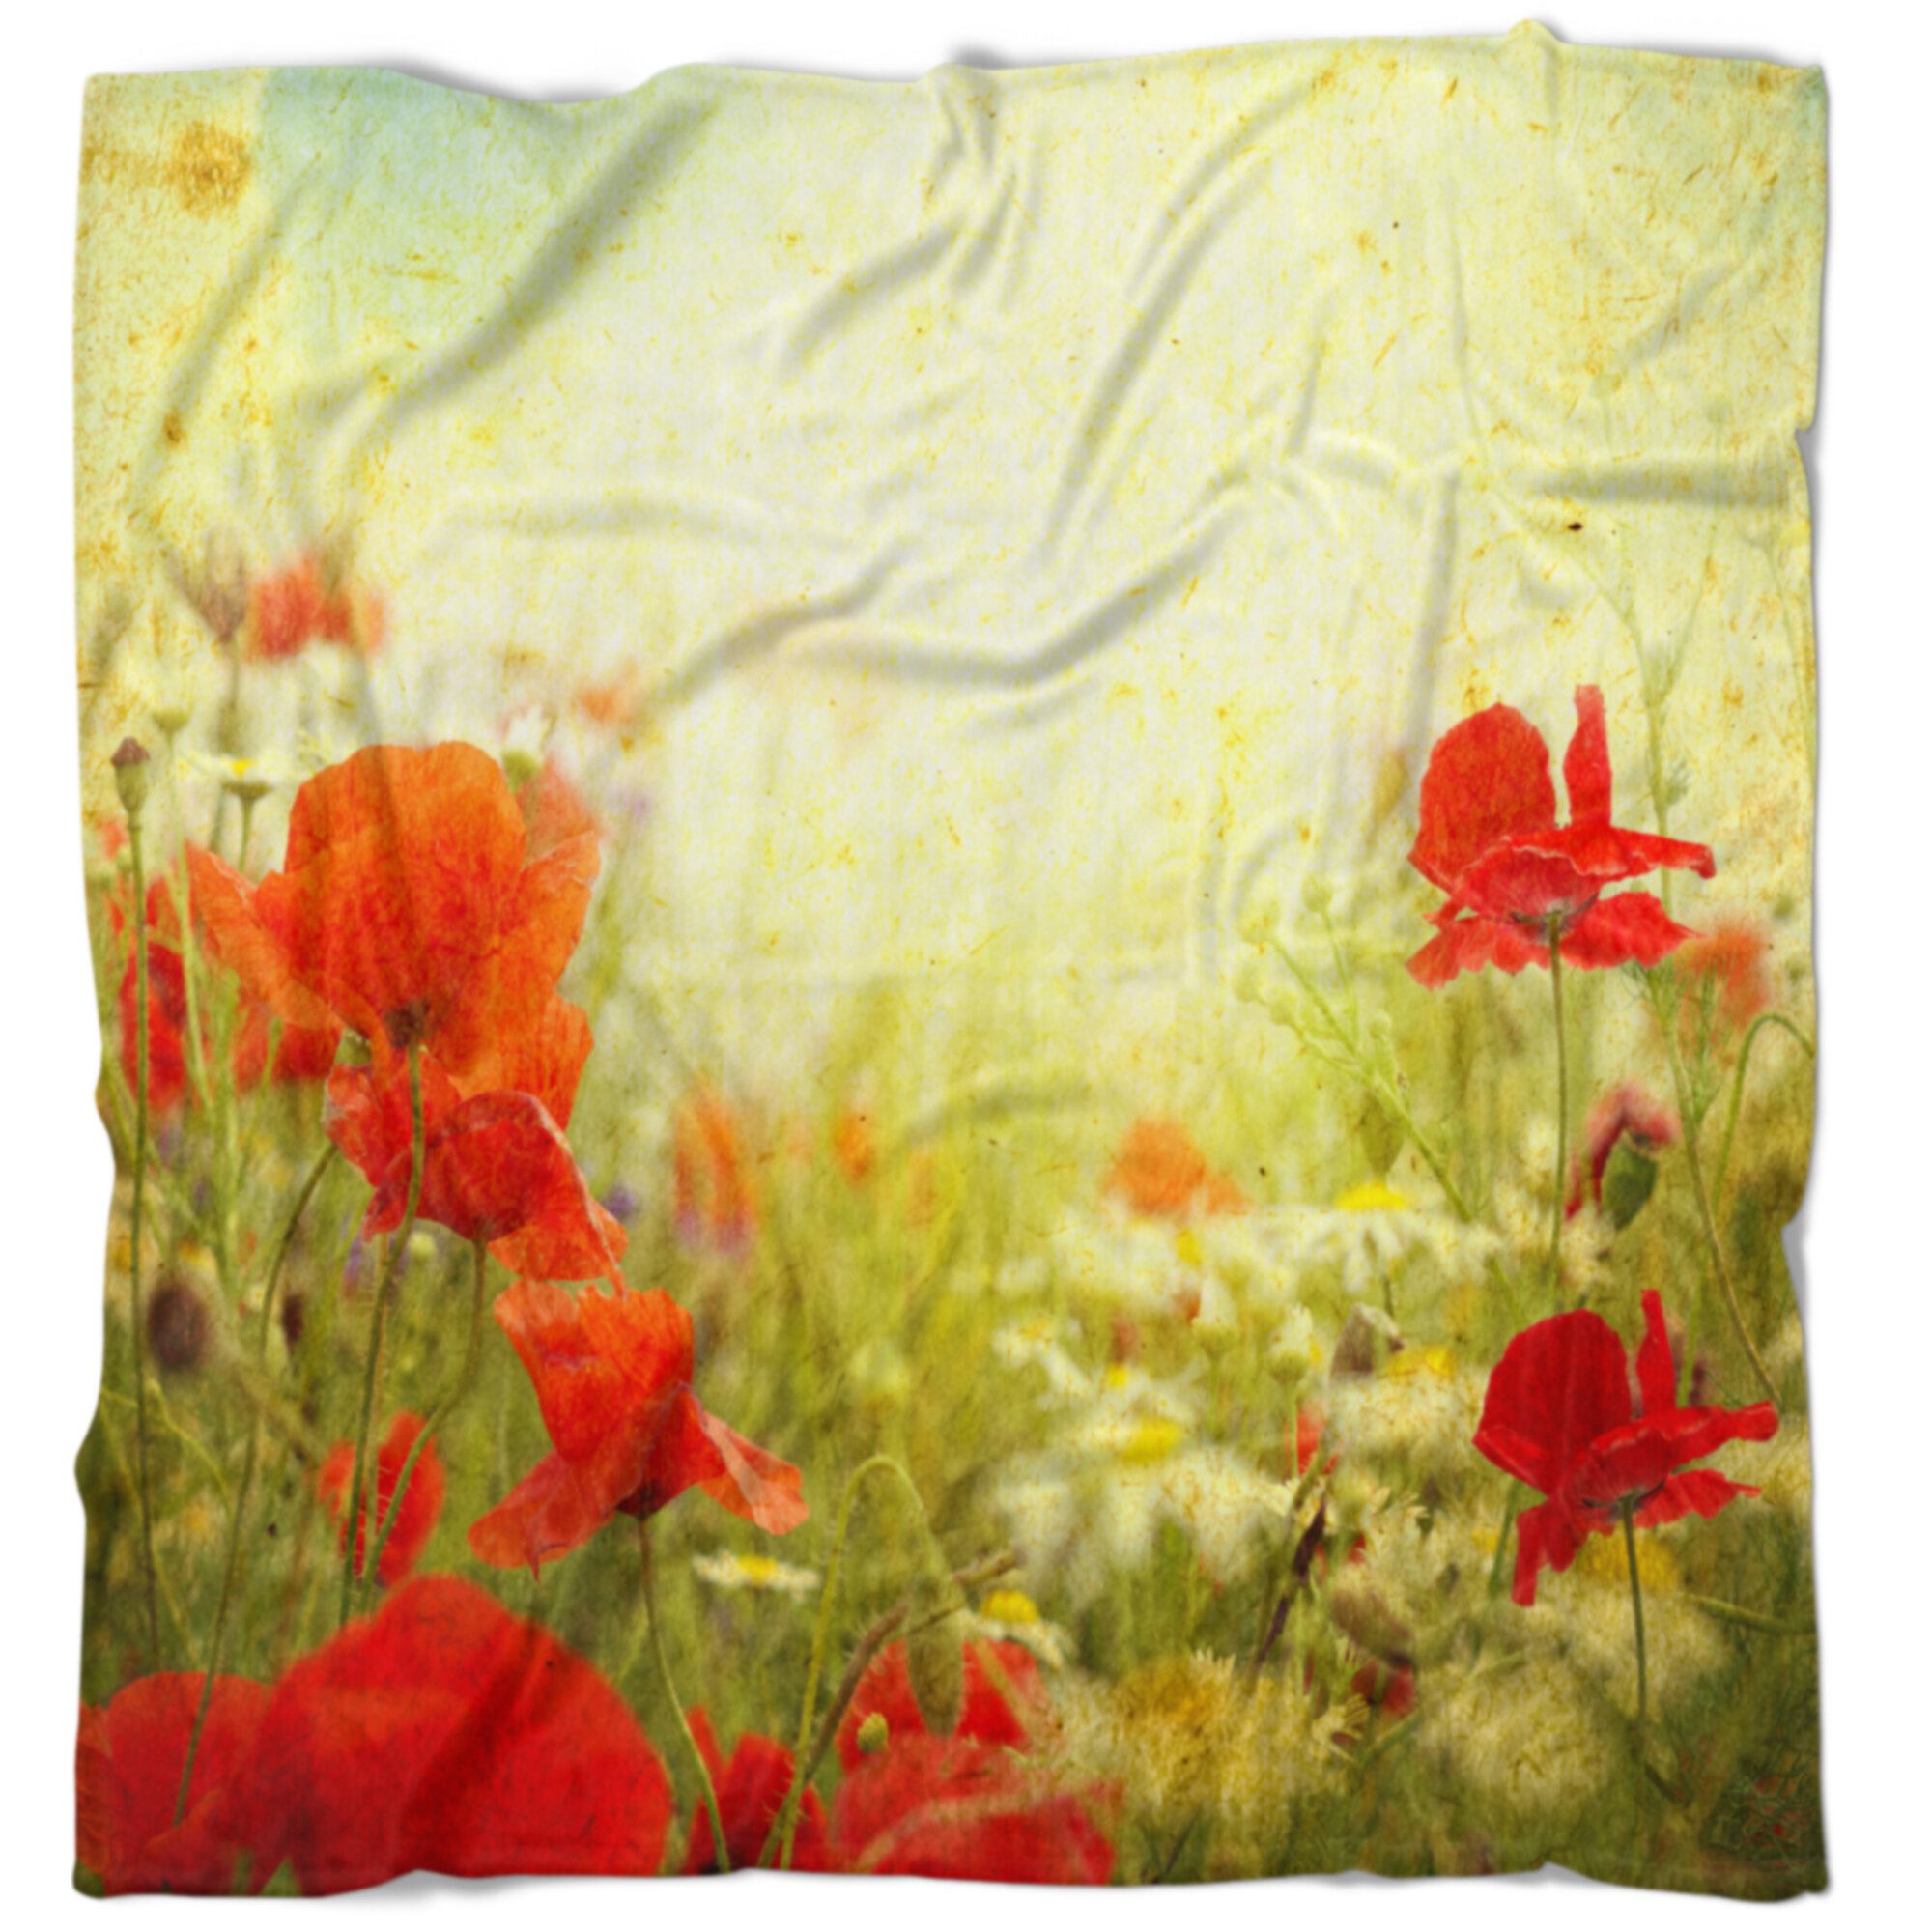 East Urban Home Floral Grunge Background With Poppies Blanket Wayfair